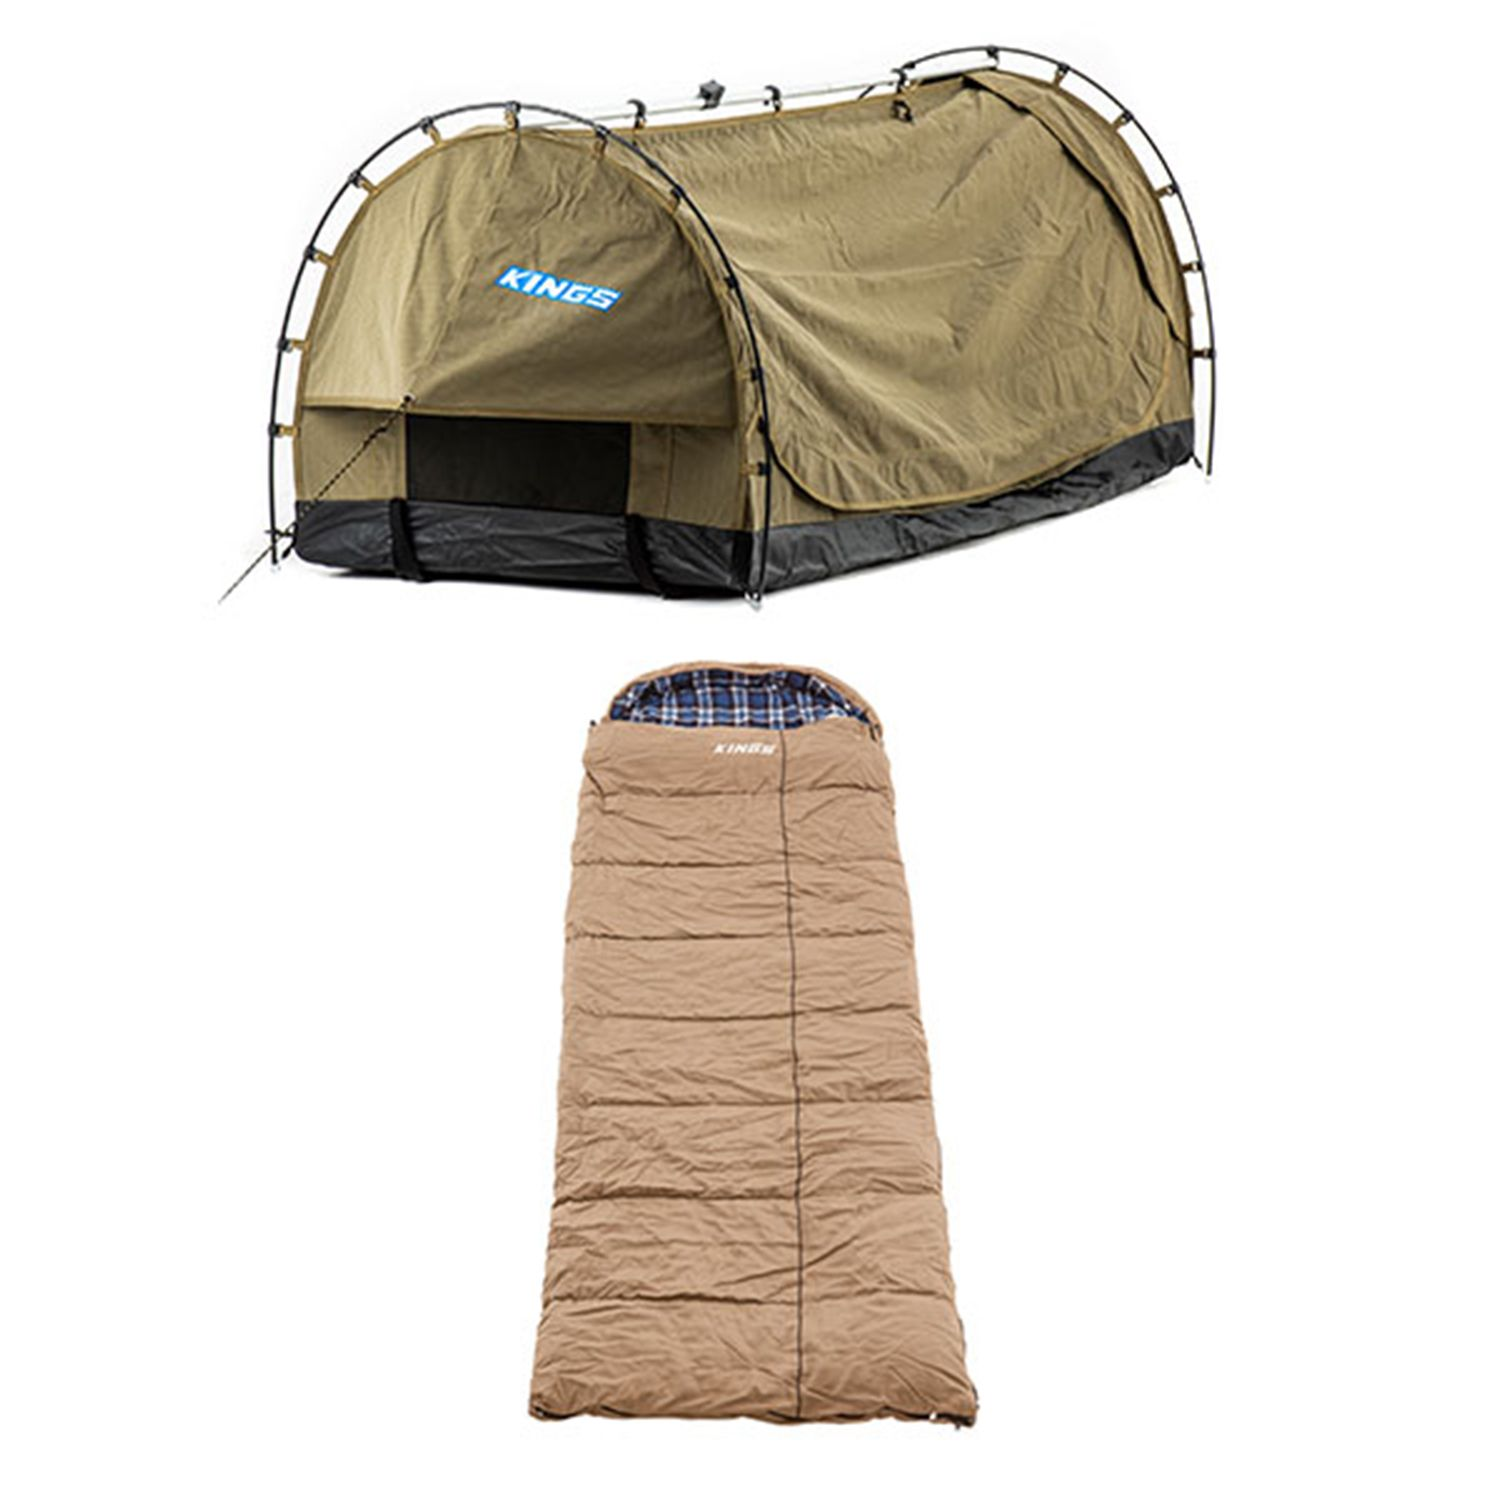 Kings Deluxe Escape Single Swag + Premium Sleeping bag -5°C to 5°C Degrees Celsius Right Zipper